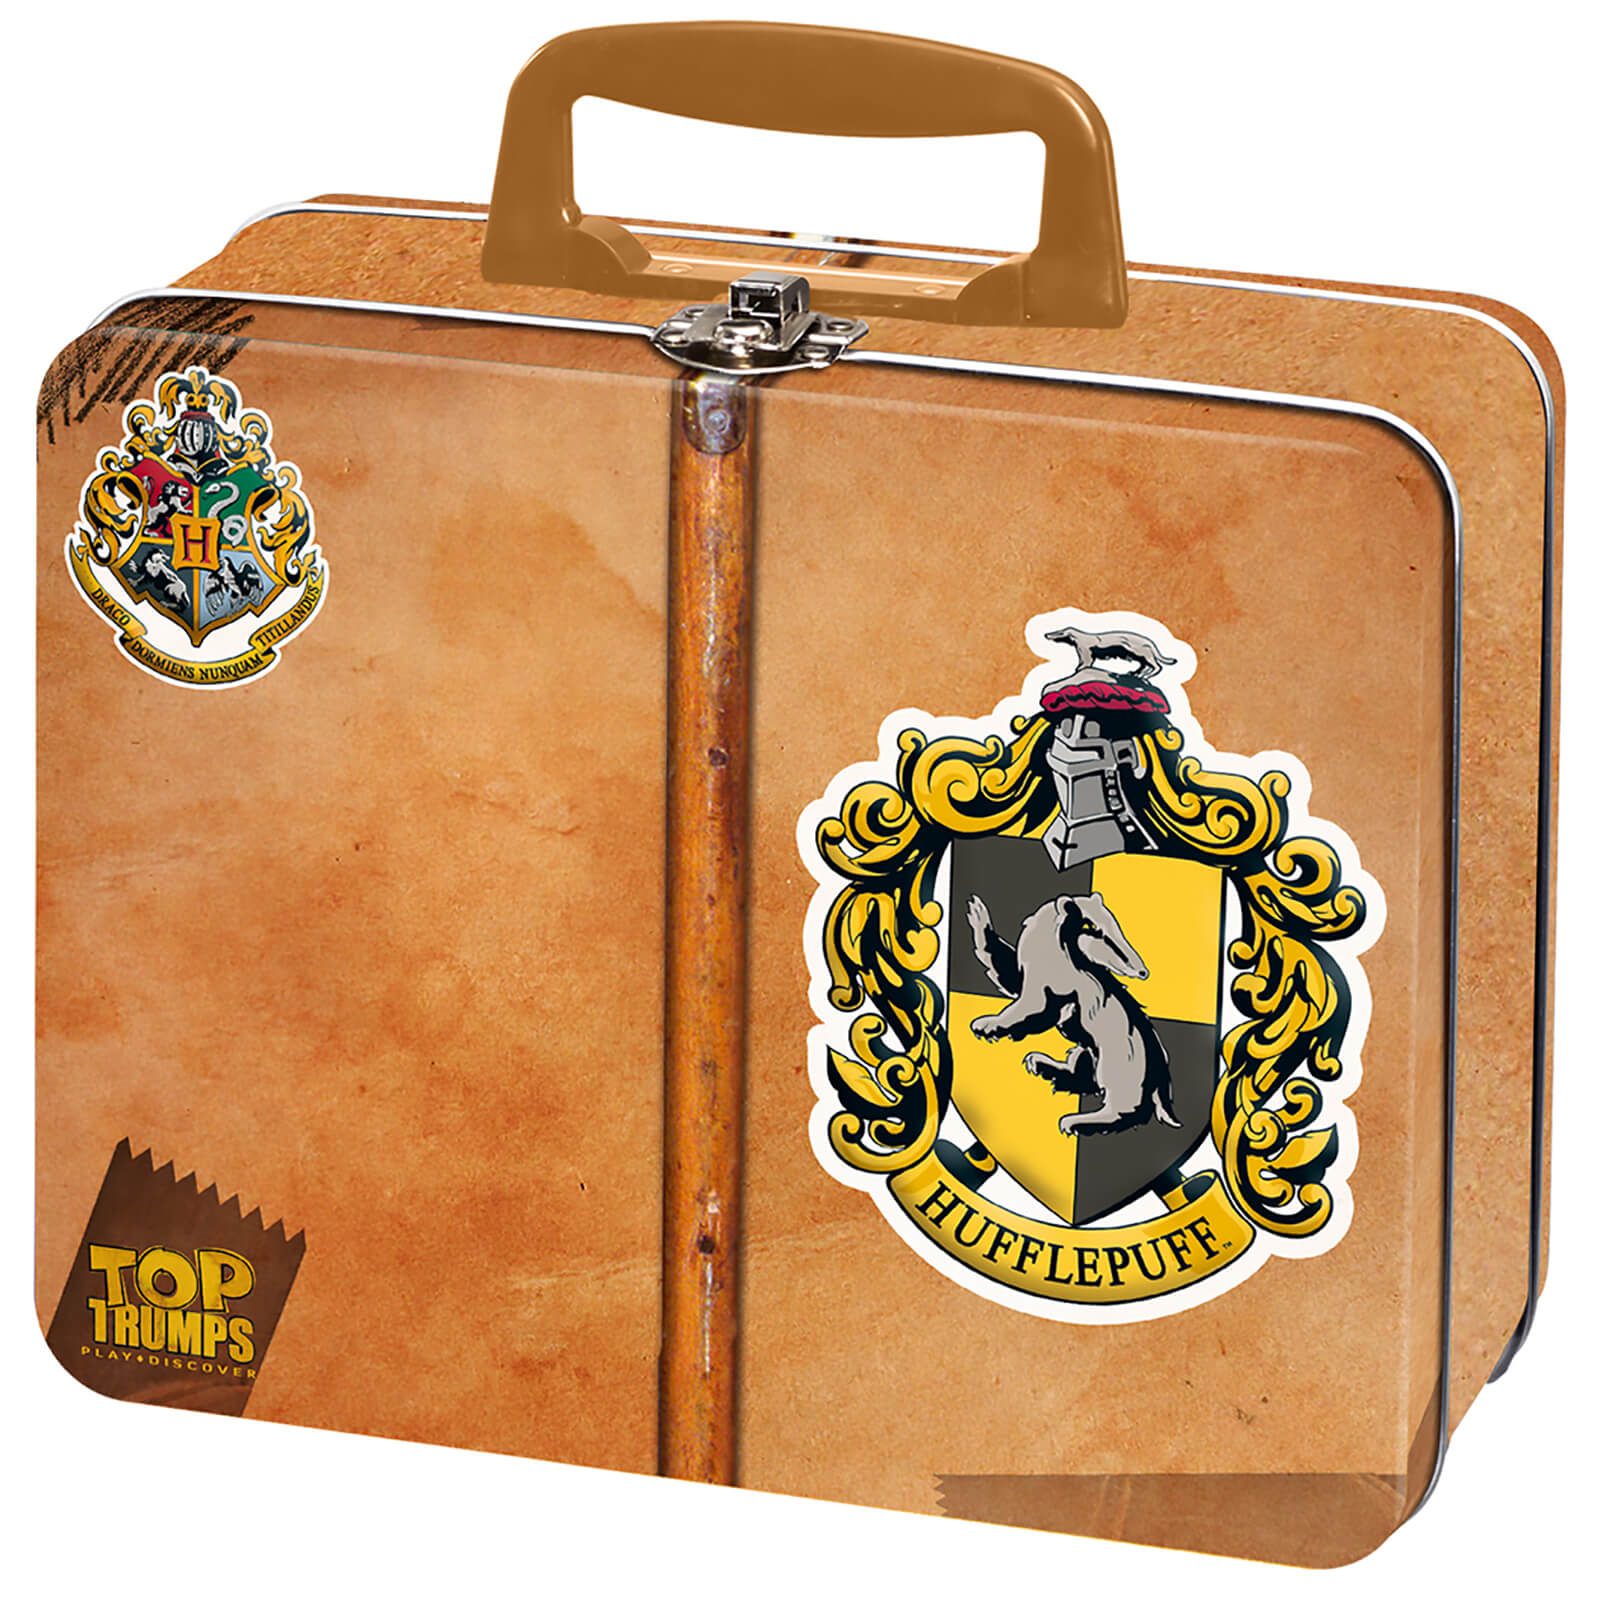 Image of Top Trumps Collector's Tin Card Game - Harry Potter Hufflepuff Edition